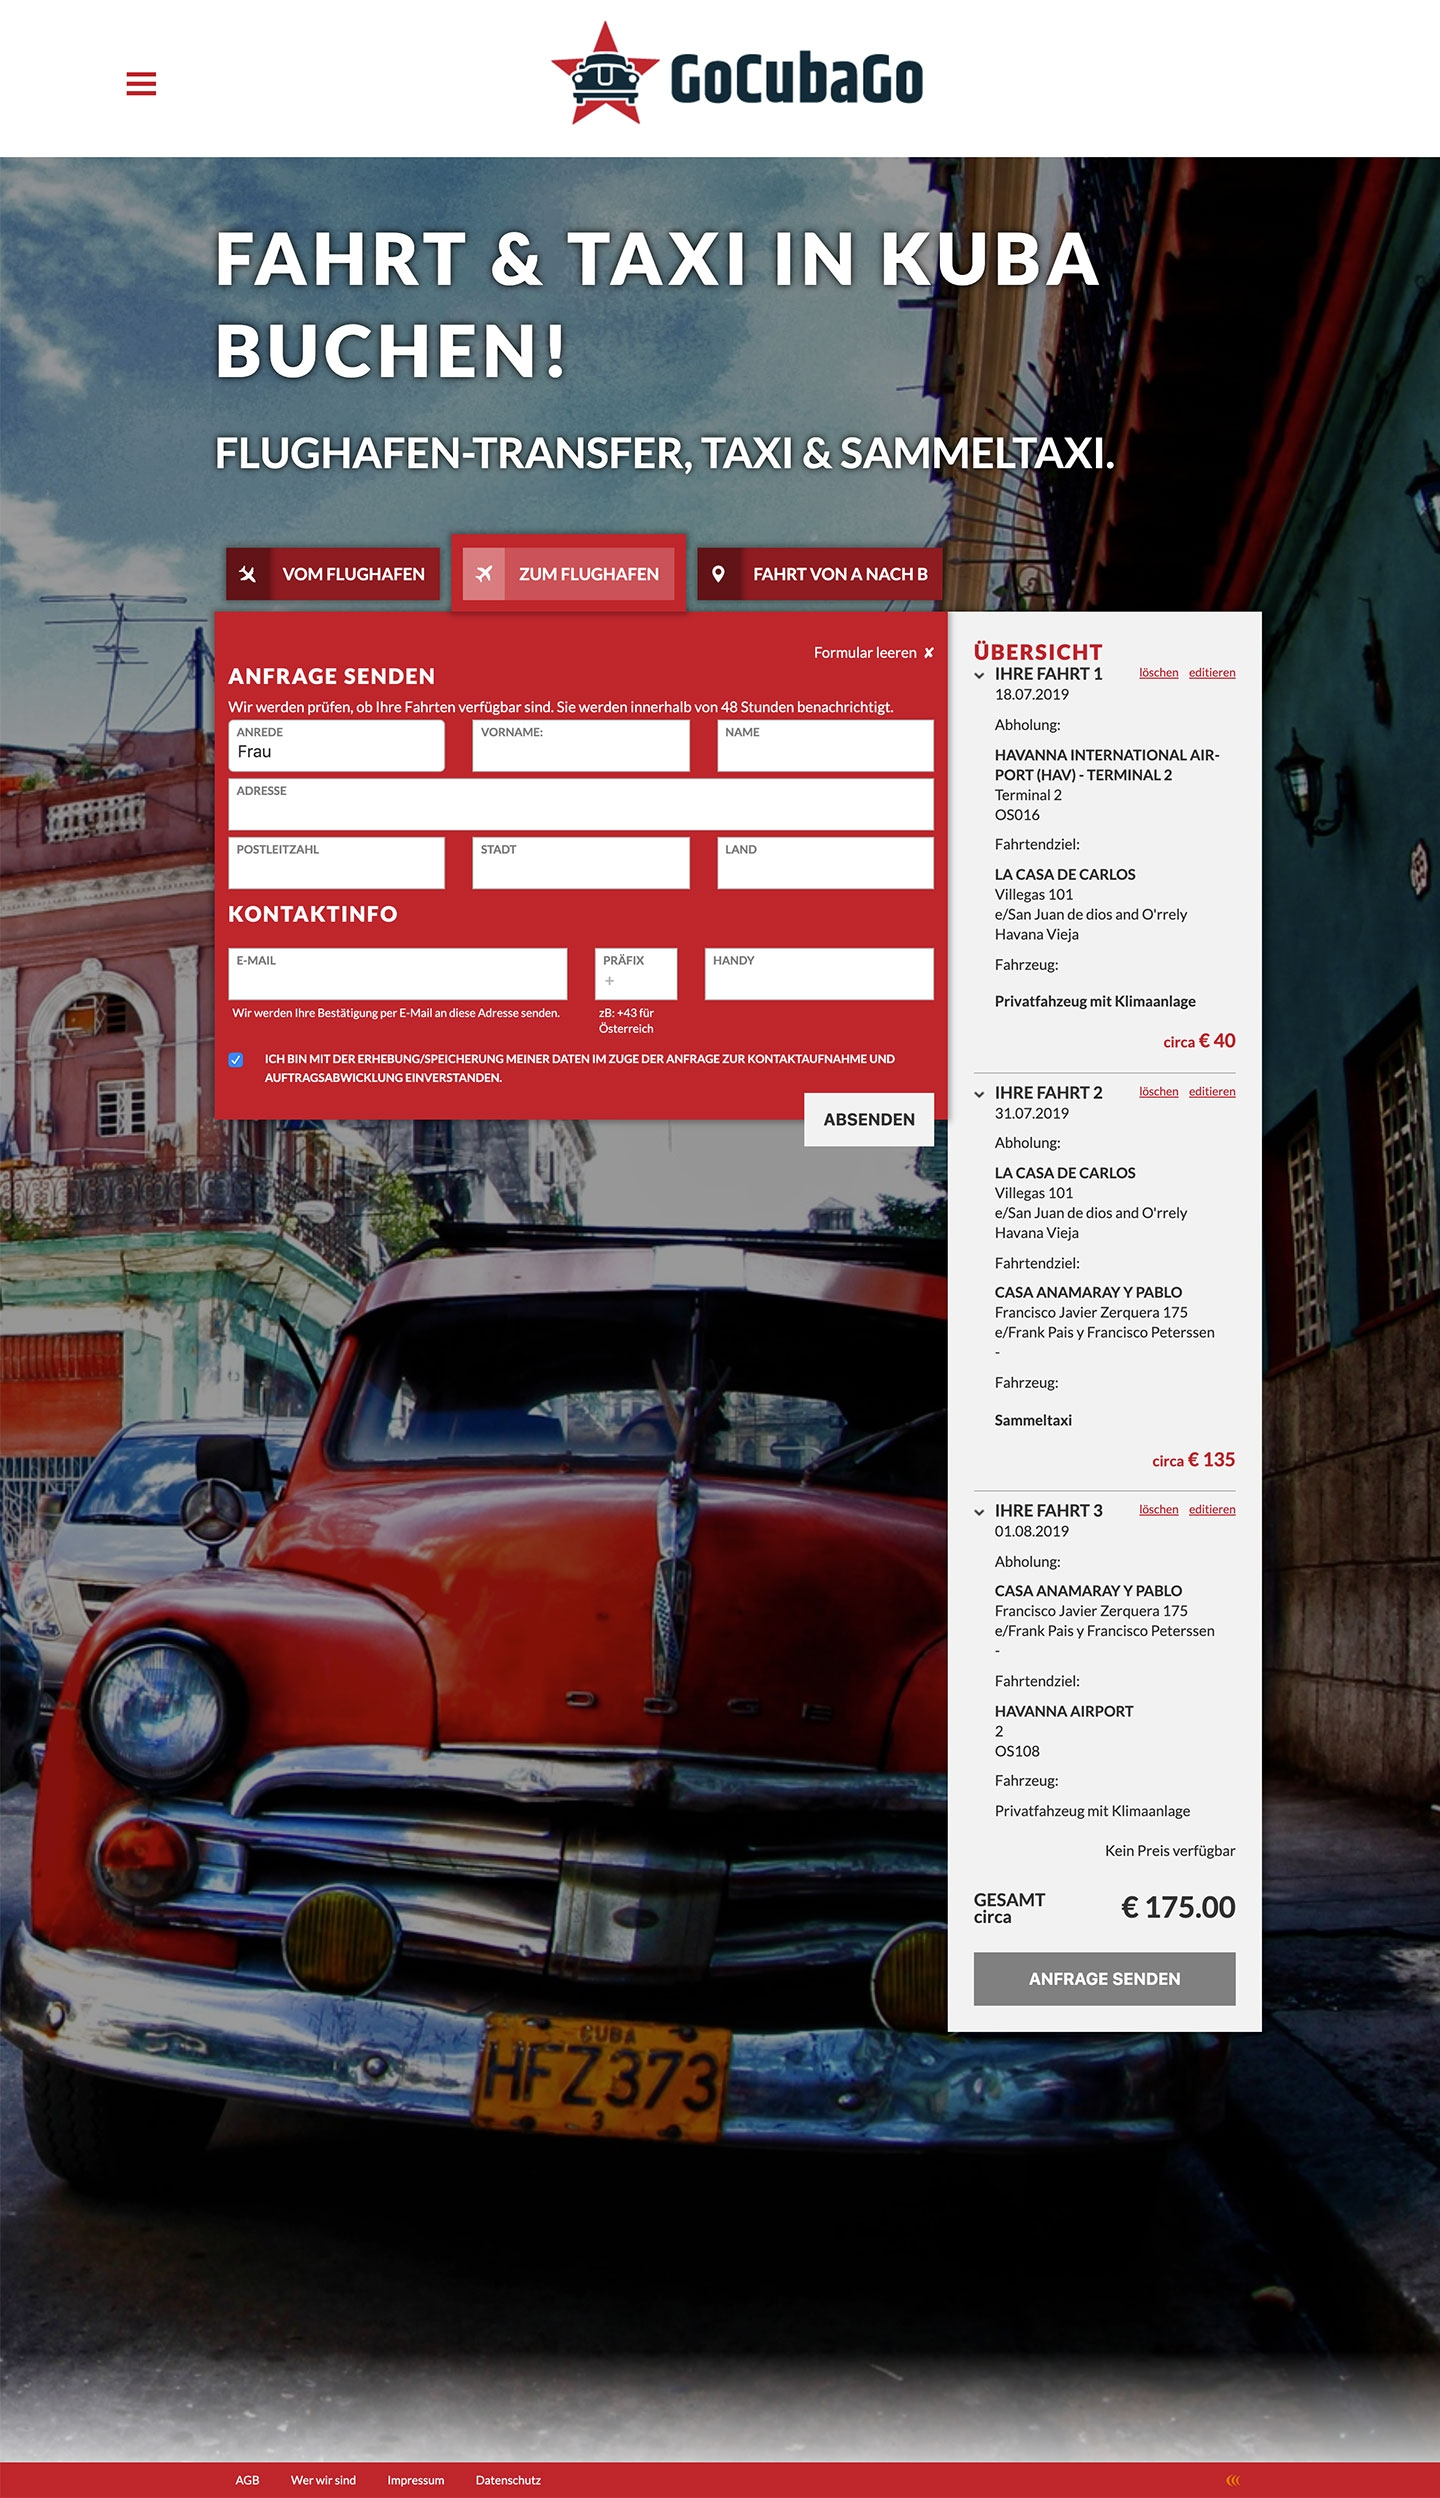 Go Cuba Go | gocubago.com | 2018 (Screen Full) © echonet communication GmbH